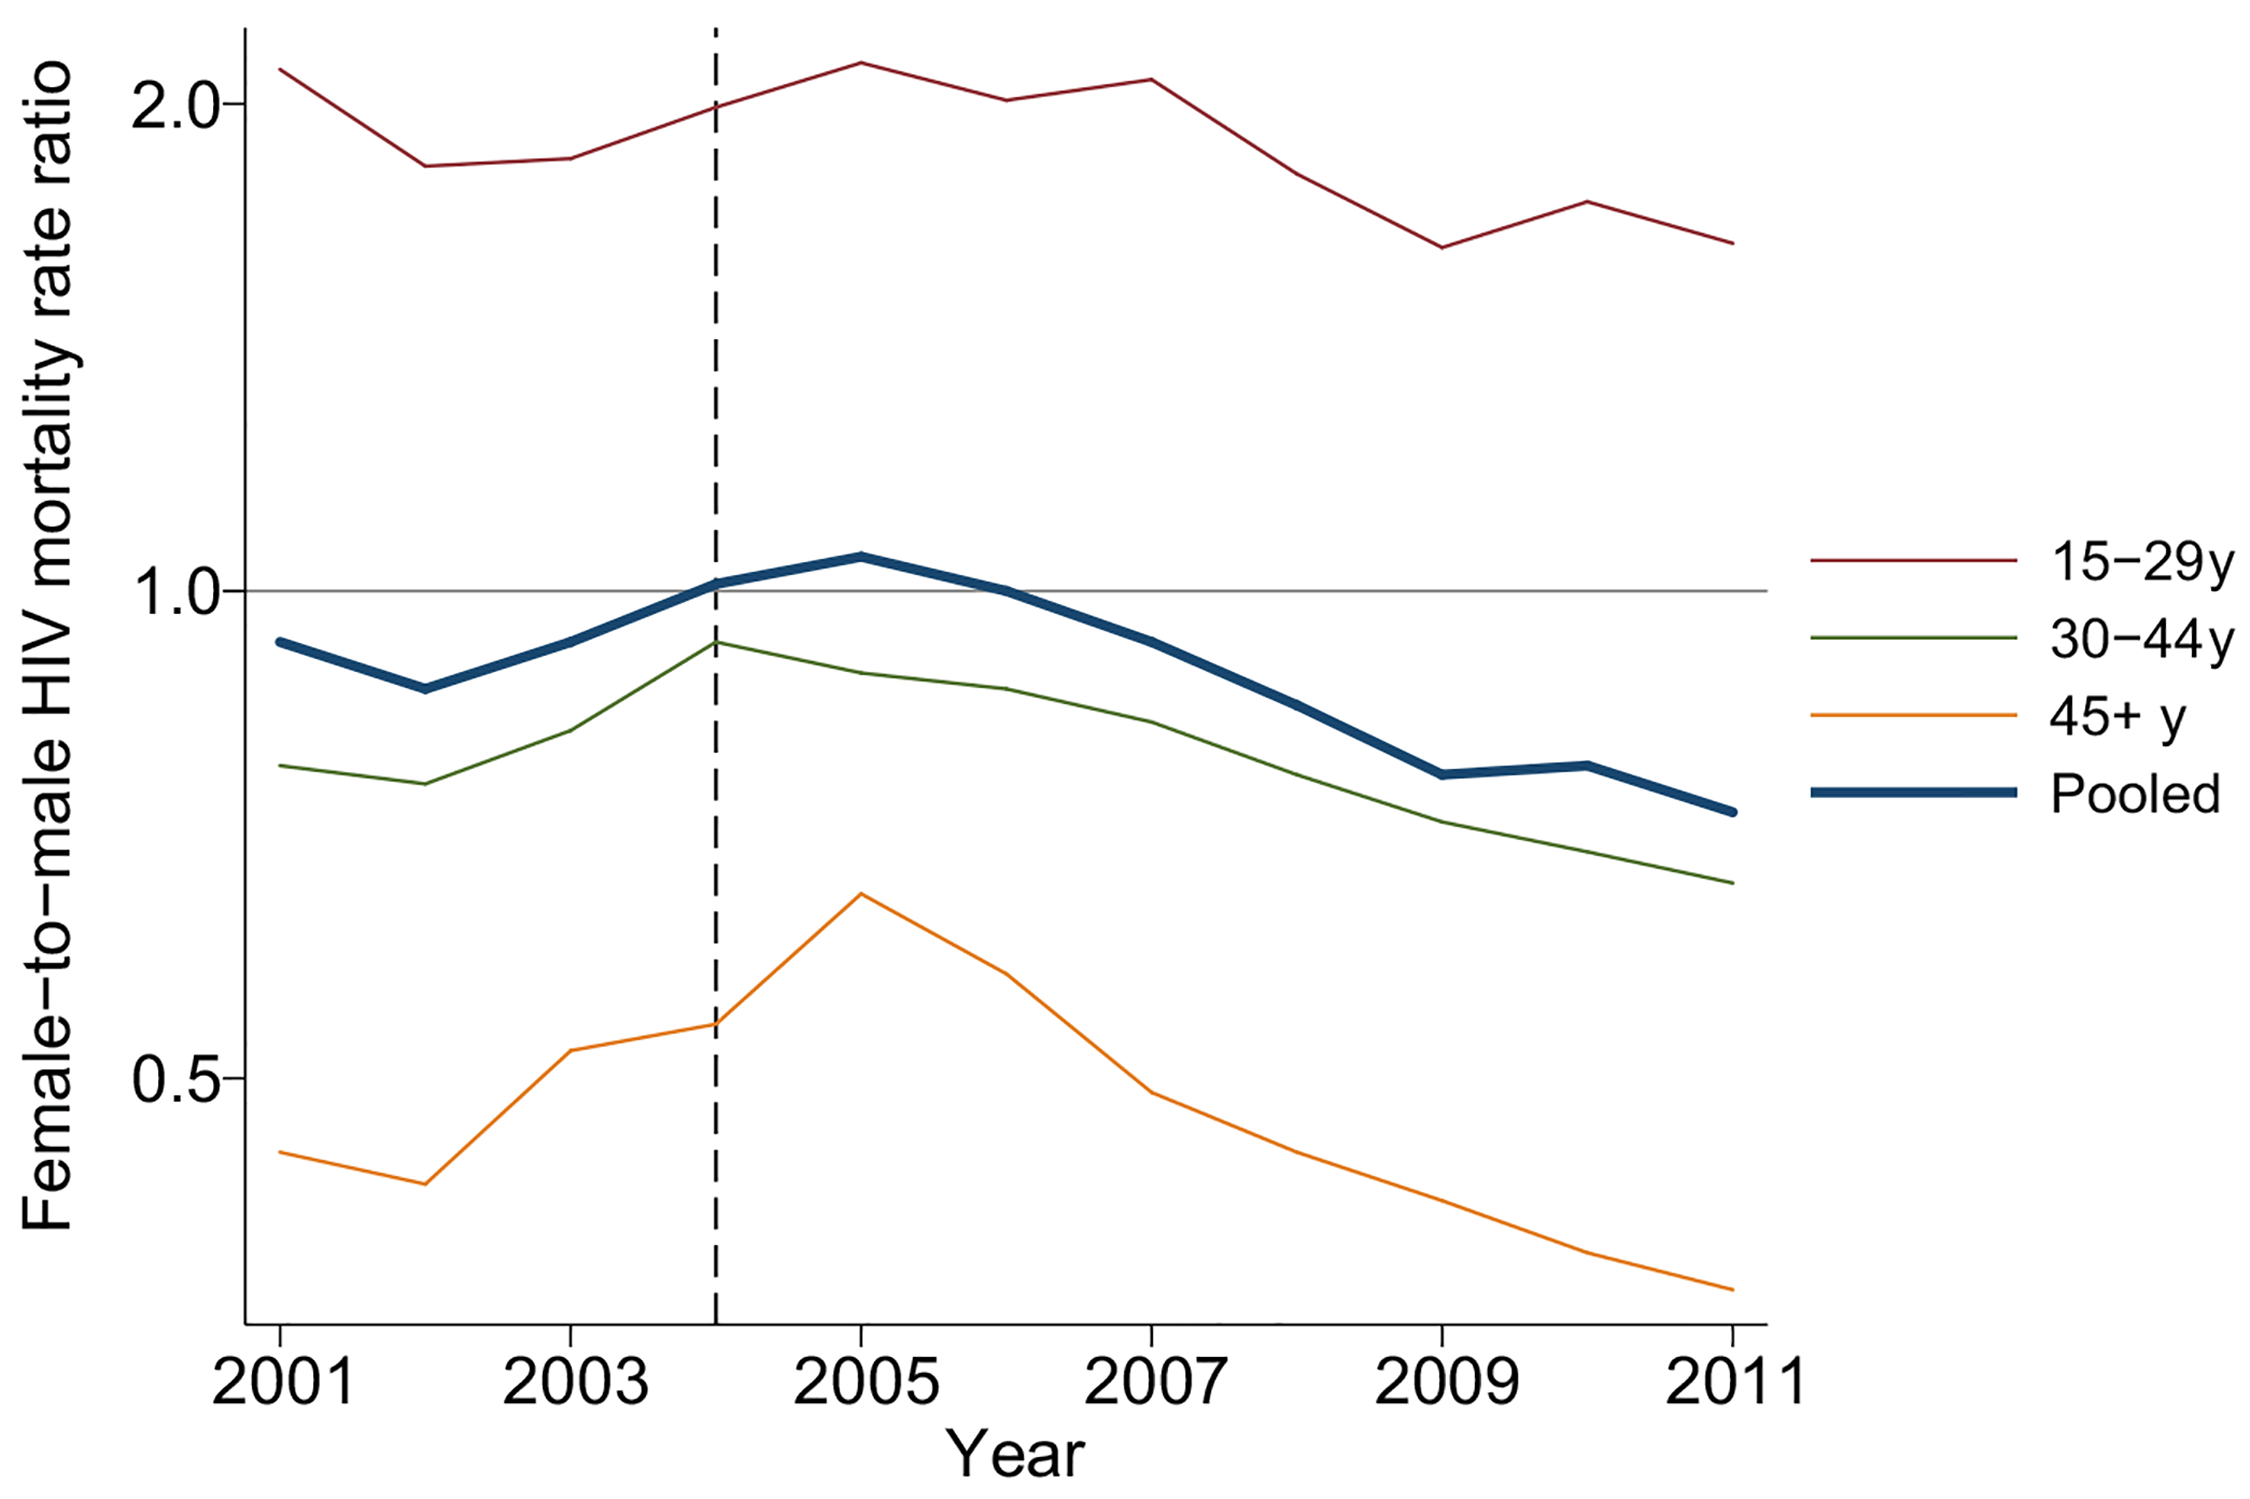 Female-to-male HIV mortality rate ratios by age and calendar year, 2001–2011.